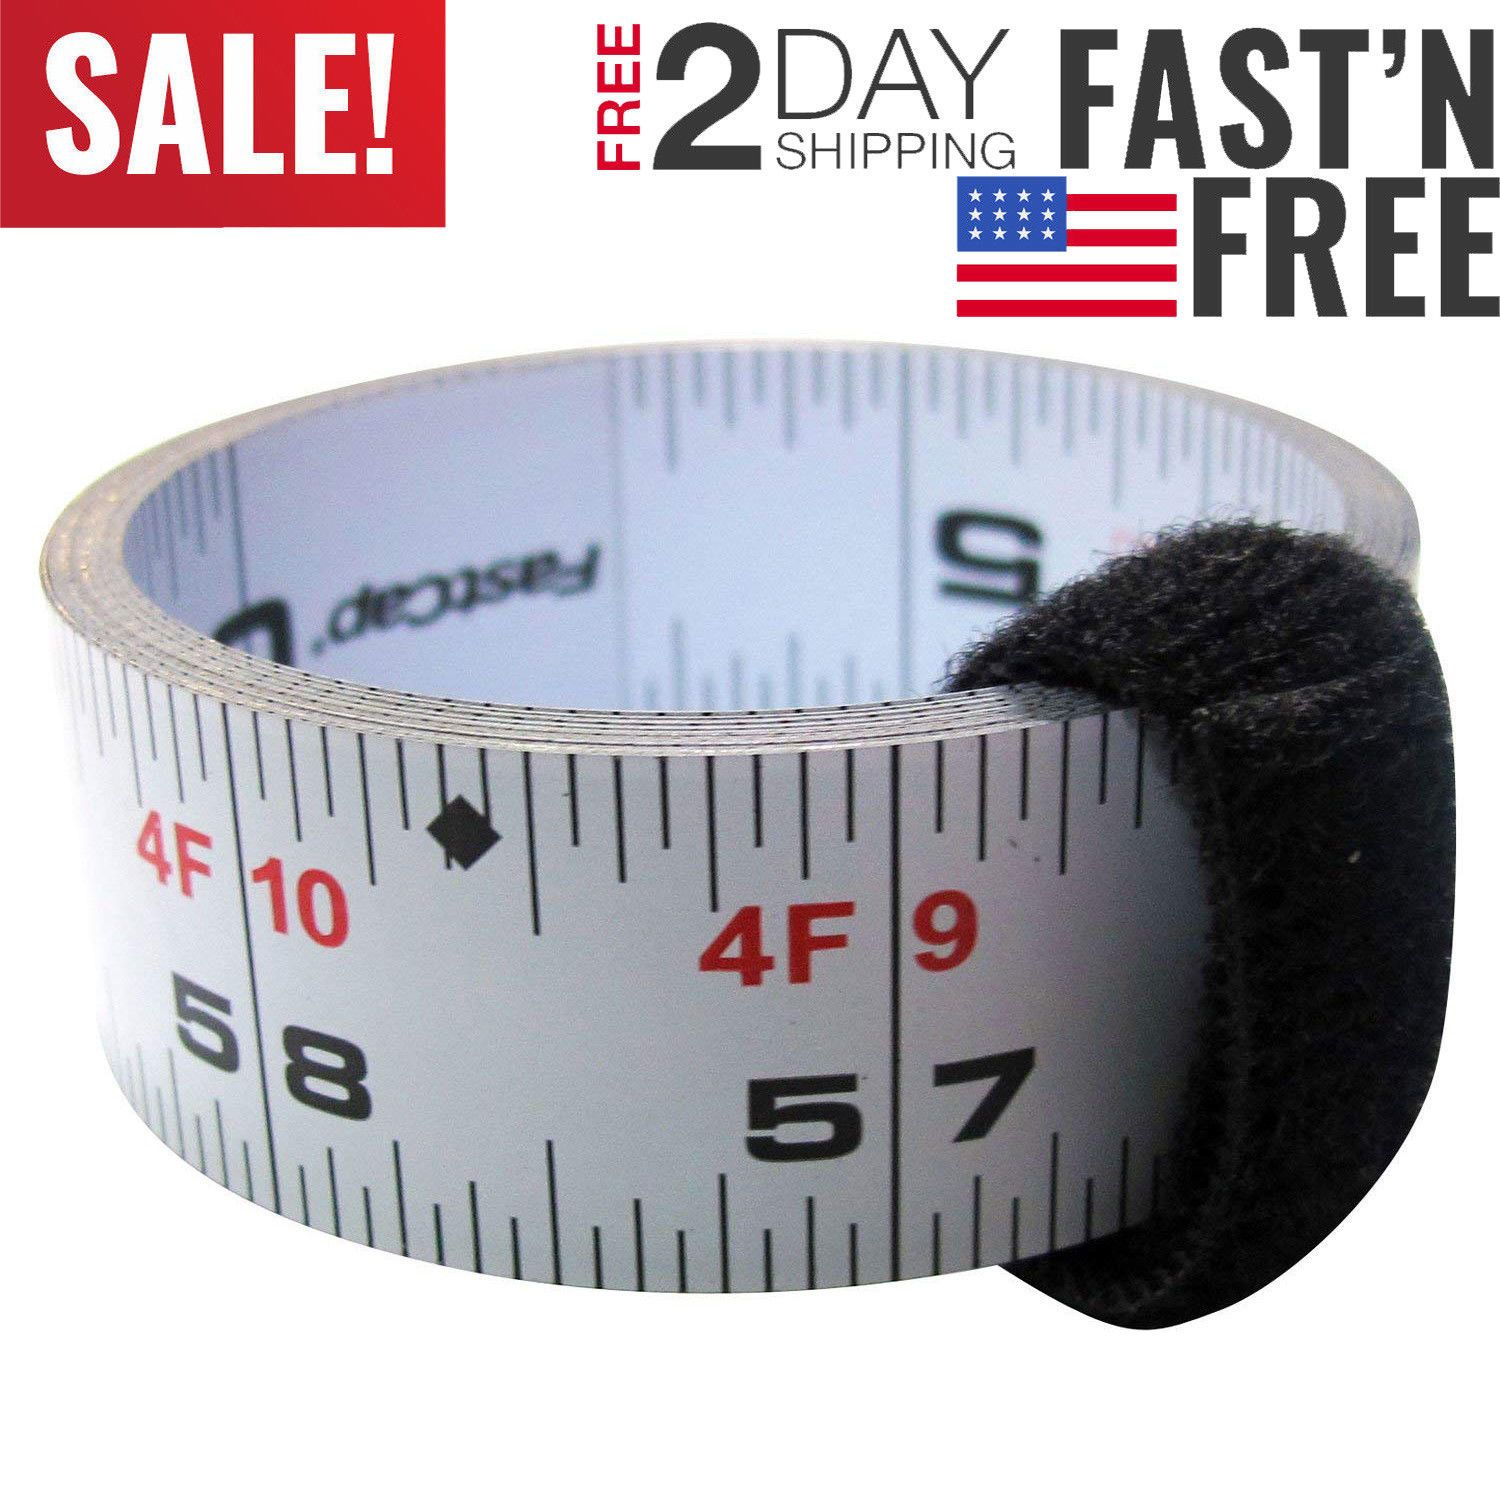 Measuring Tapes And Rulers 29524 Fastcap Self Adhesive 16 Measuring Tape Reversible Left Or Right Read Strong New Buy It Now Onl Tape Measure Adhesive Tape